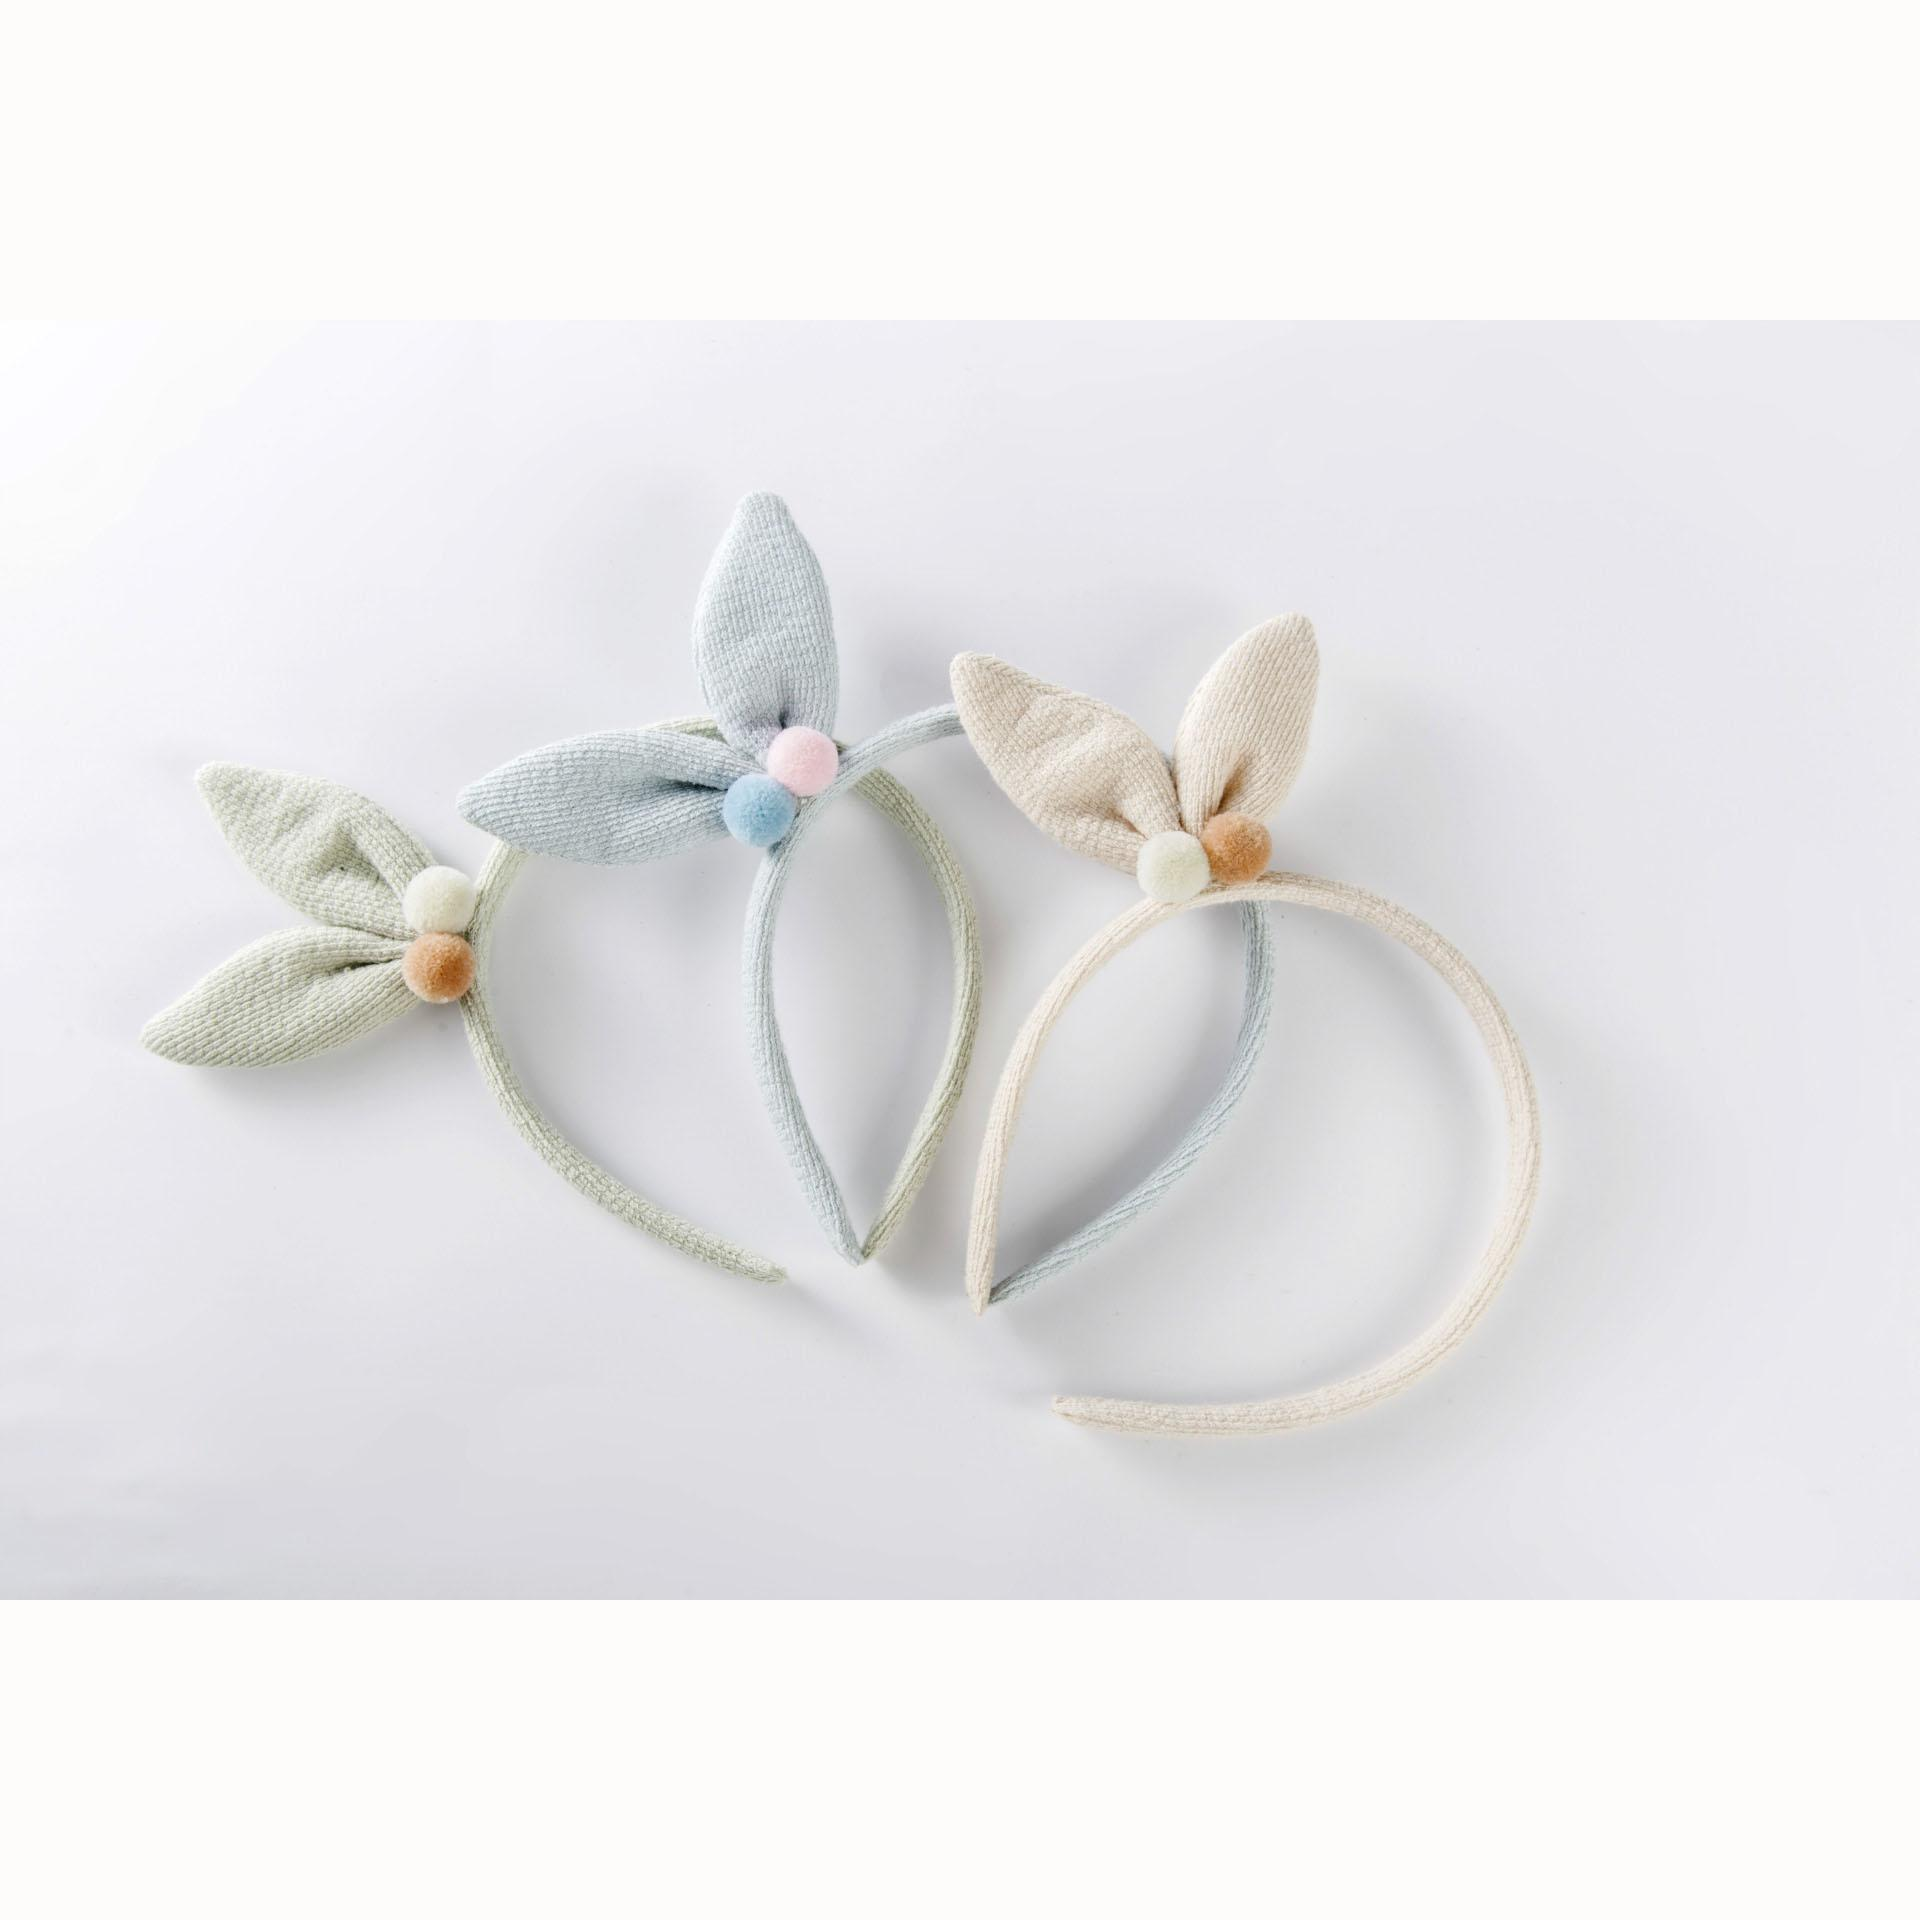 2018 Cute Rabbit Ears Hair Bands For Kids Candy Color Bow Headbands ...